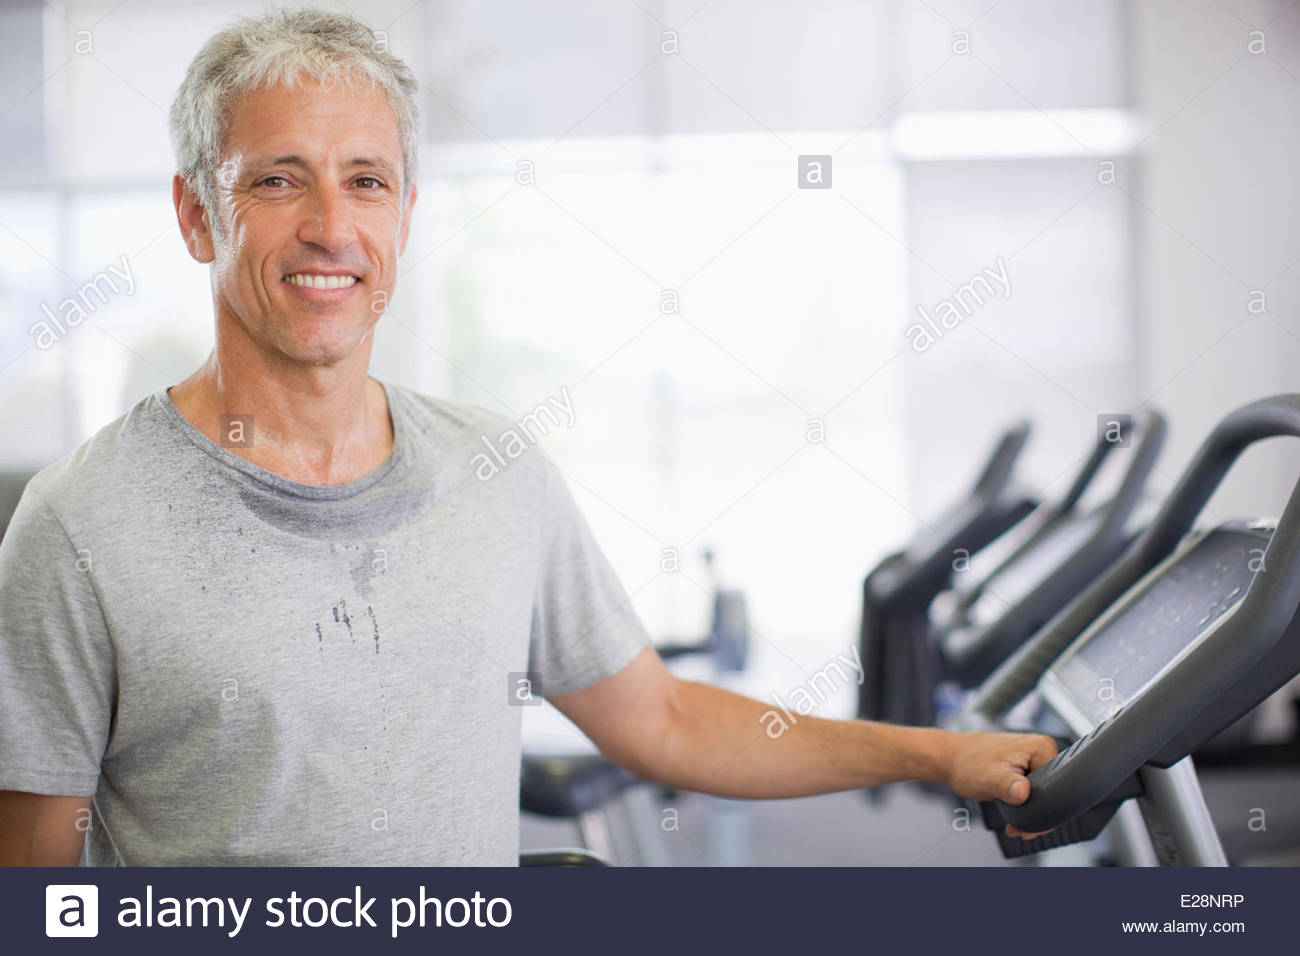 Portrait of smiling man on treadmill in gymnasium - Stock Image